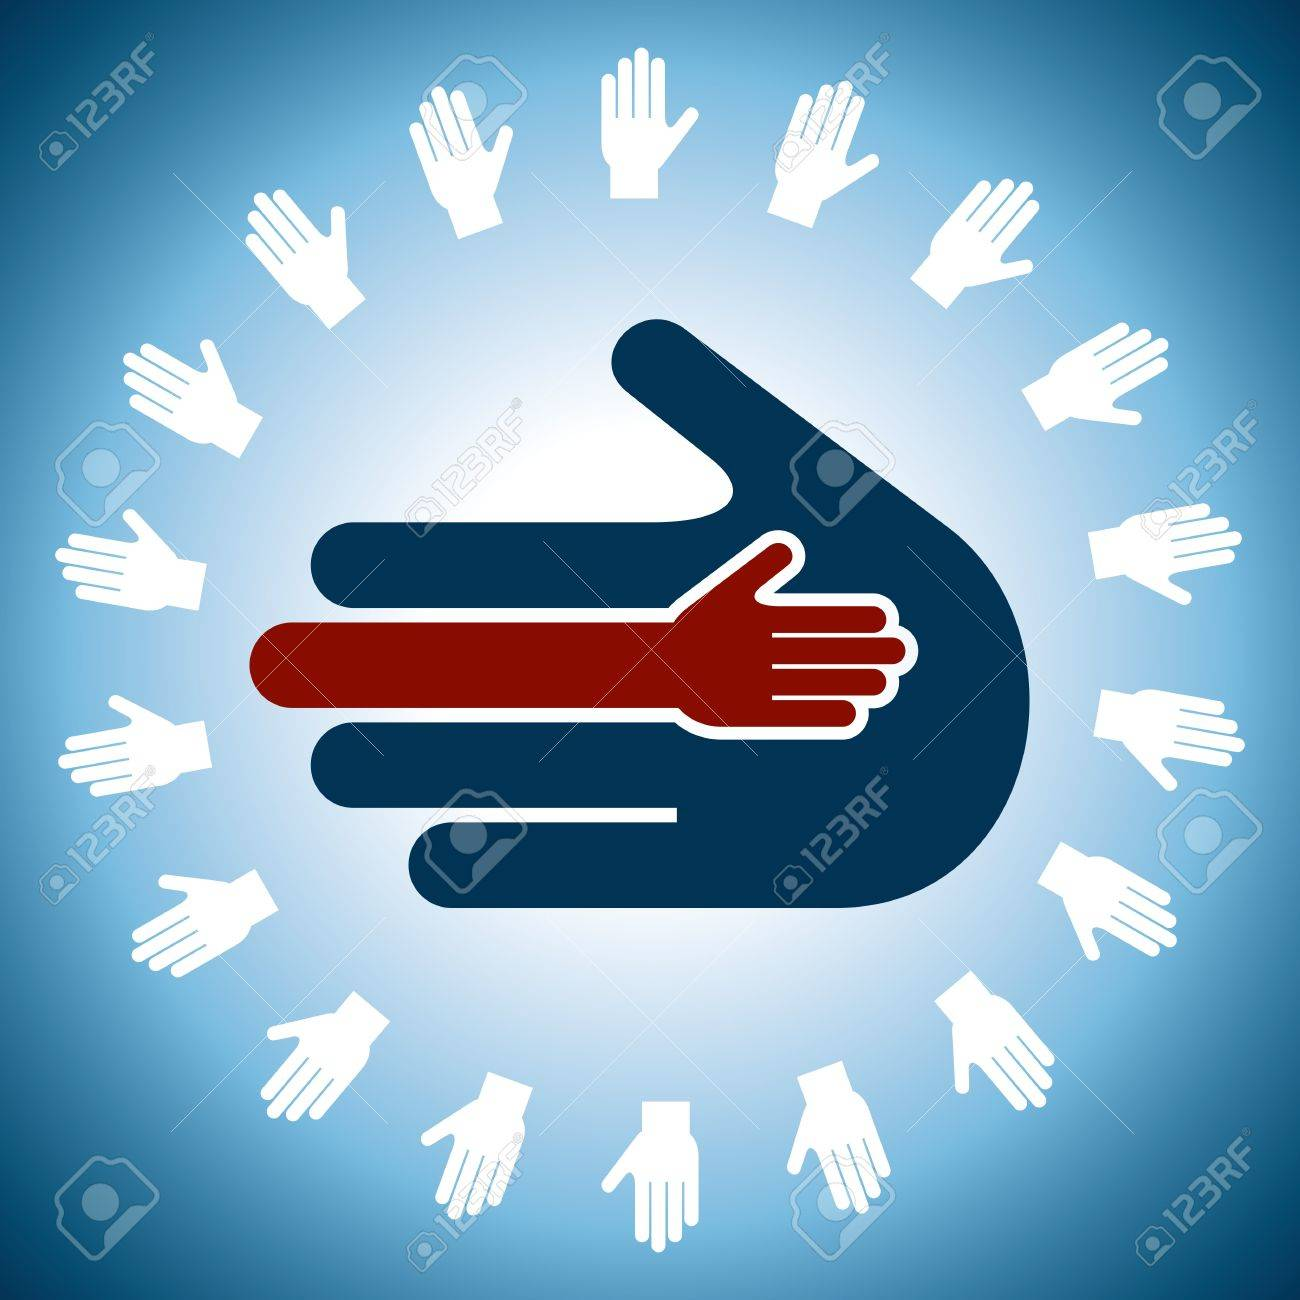 human hand unity concept Stock Vector - 18210624